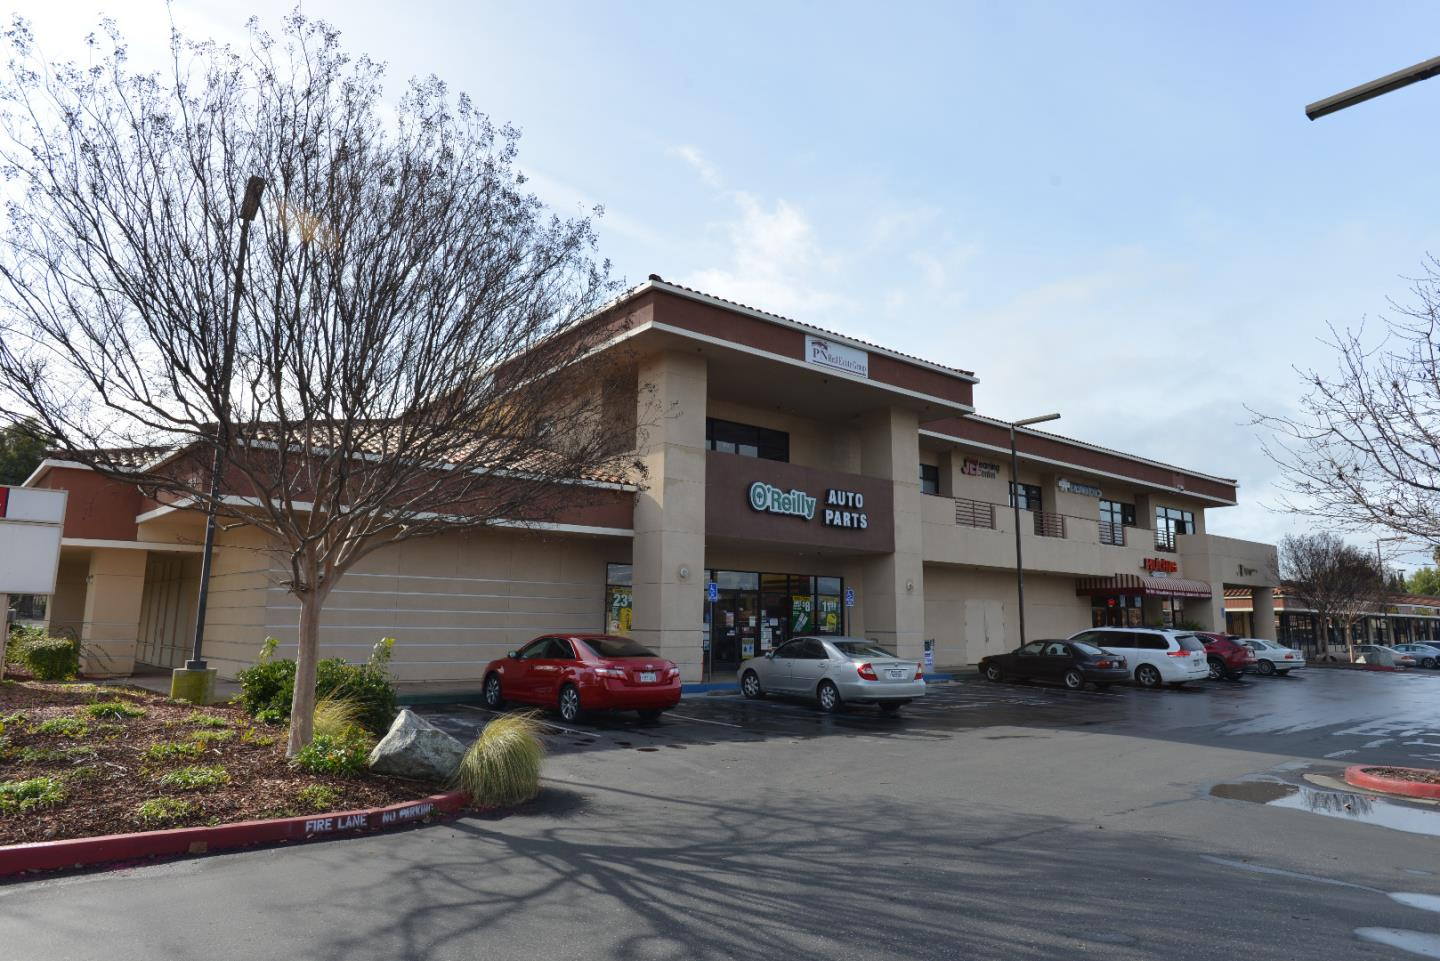 Commercial for Sale at 2850 Quimby Road 2850 Quimby Road San Jose, California 95148 United States